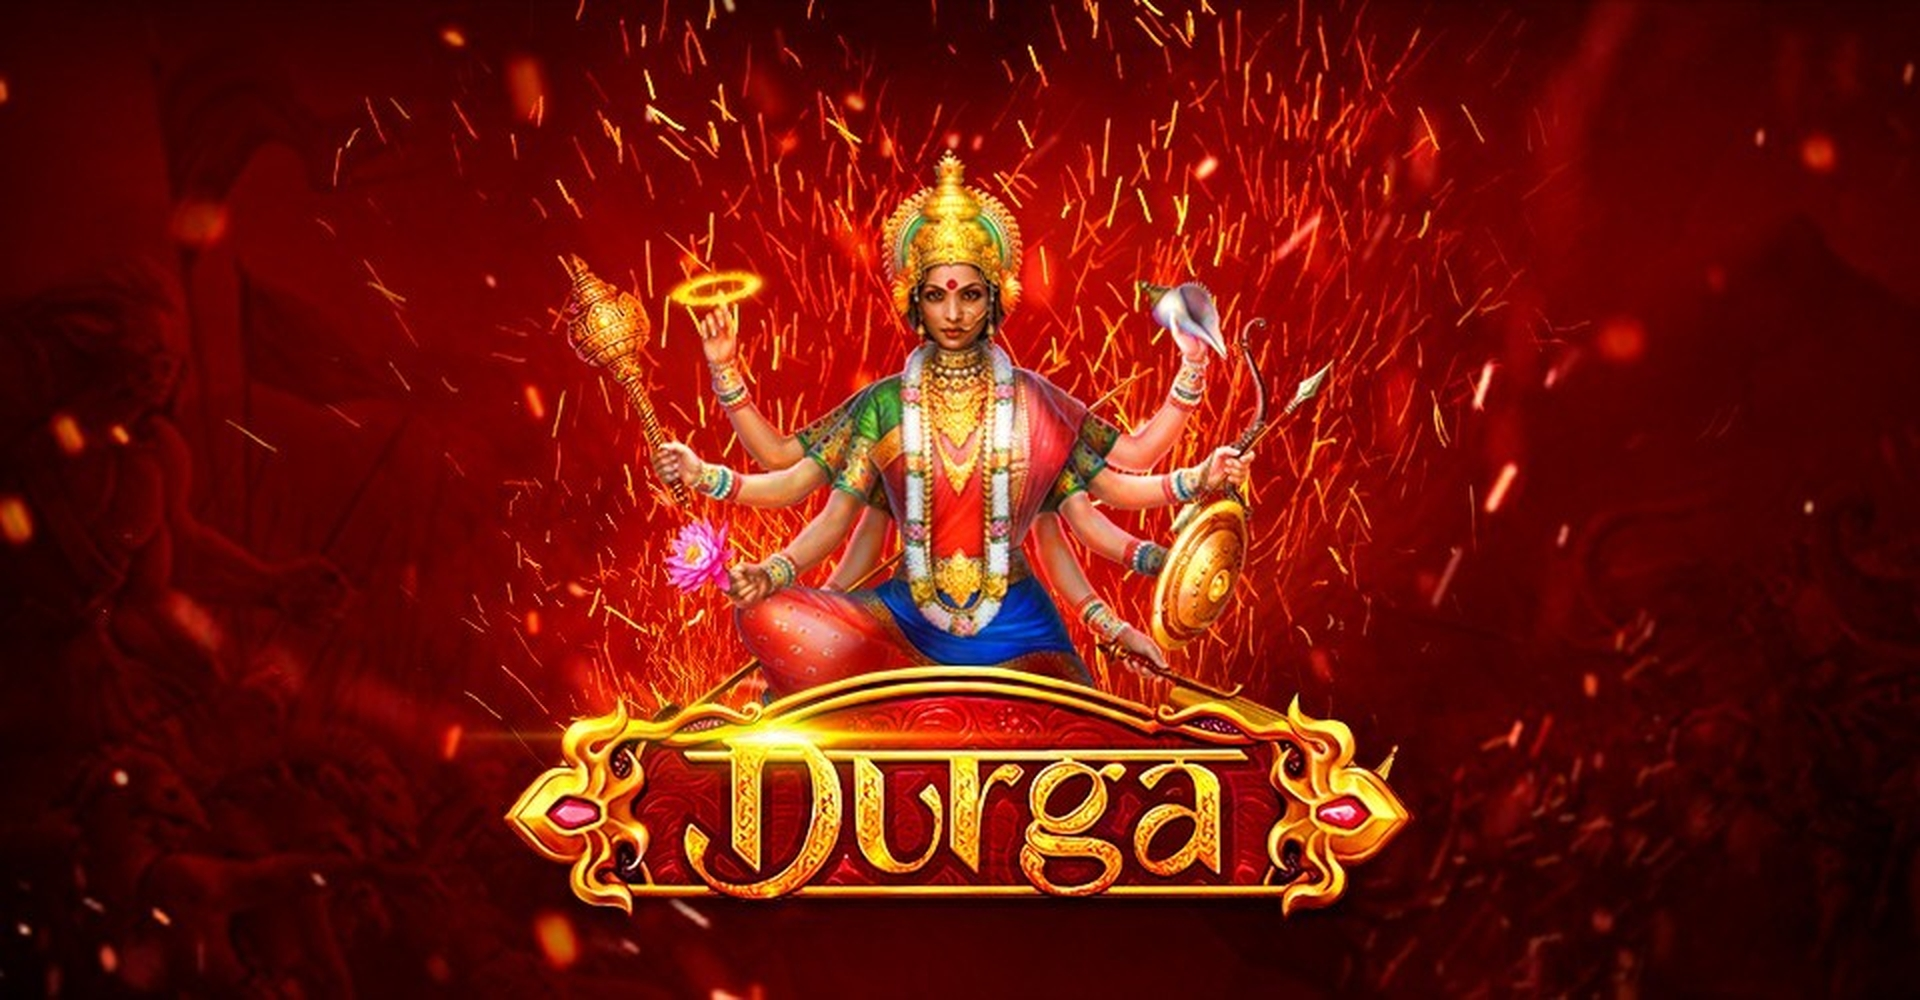 The Durga Online Slot Demo Game by Endorphina